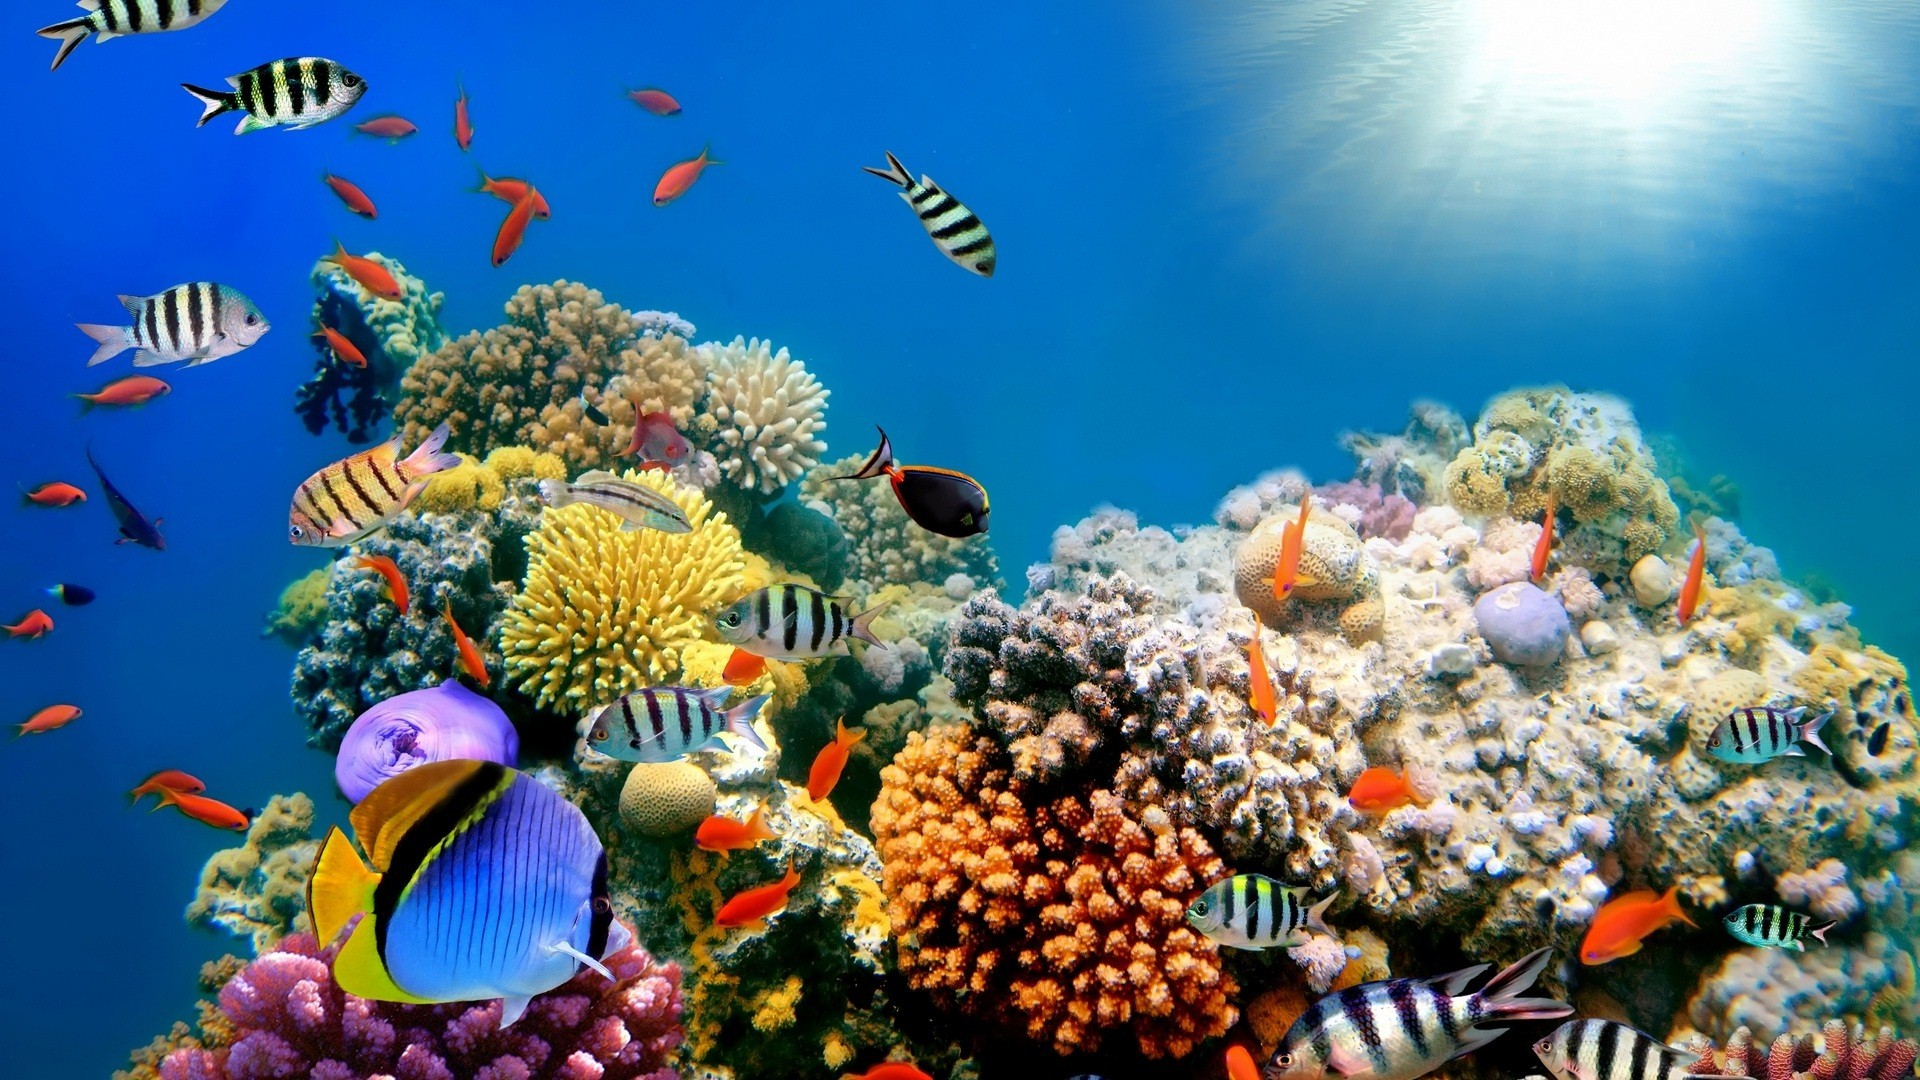 Colorful Fish Sea Creature High Quality HD Wallpapers HD Famous 1920×1080  Sea Animals Pictures